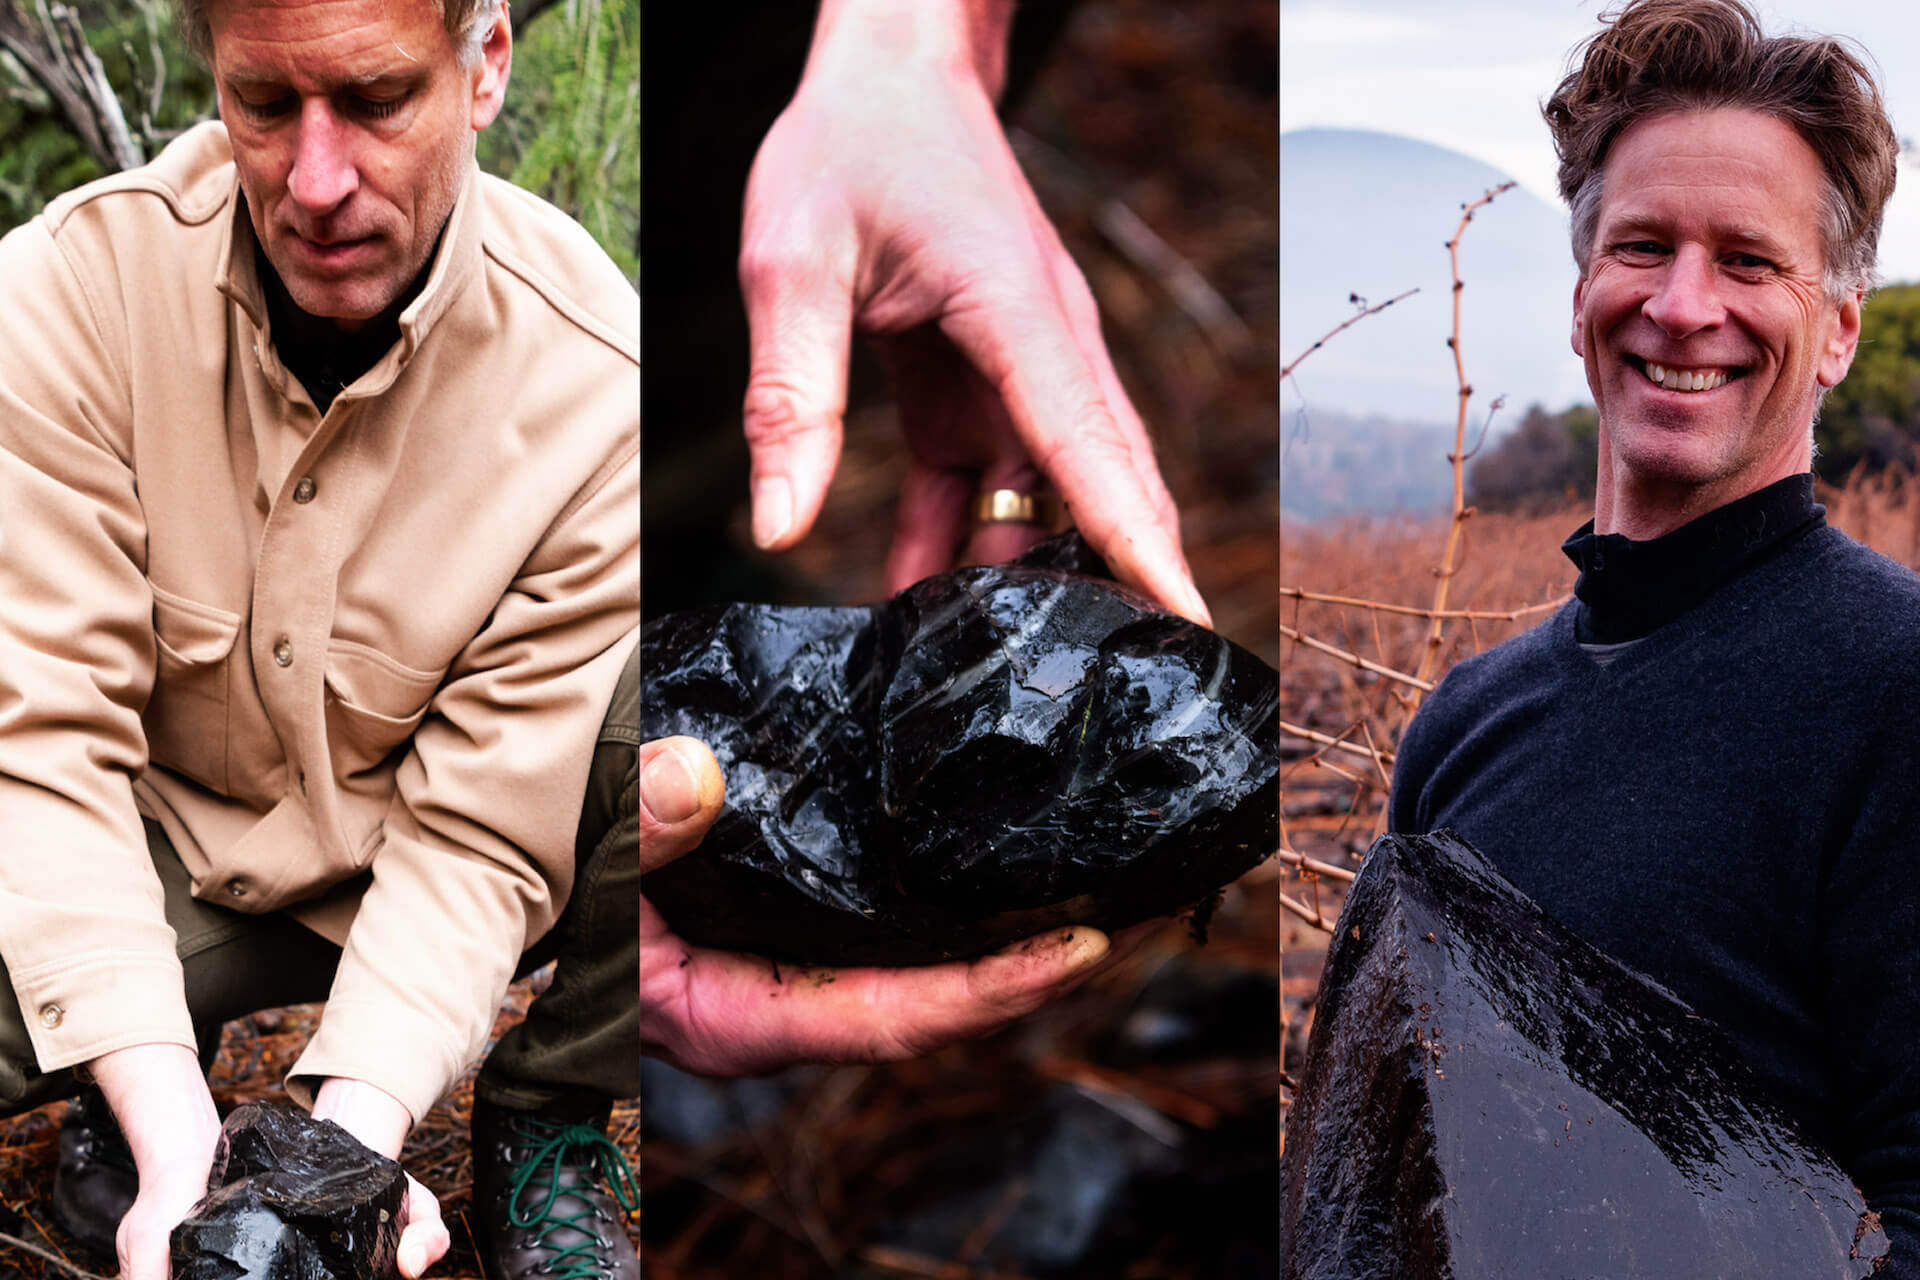 The Producers Behind California's Volcanic Wines